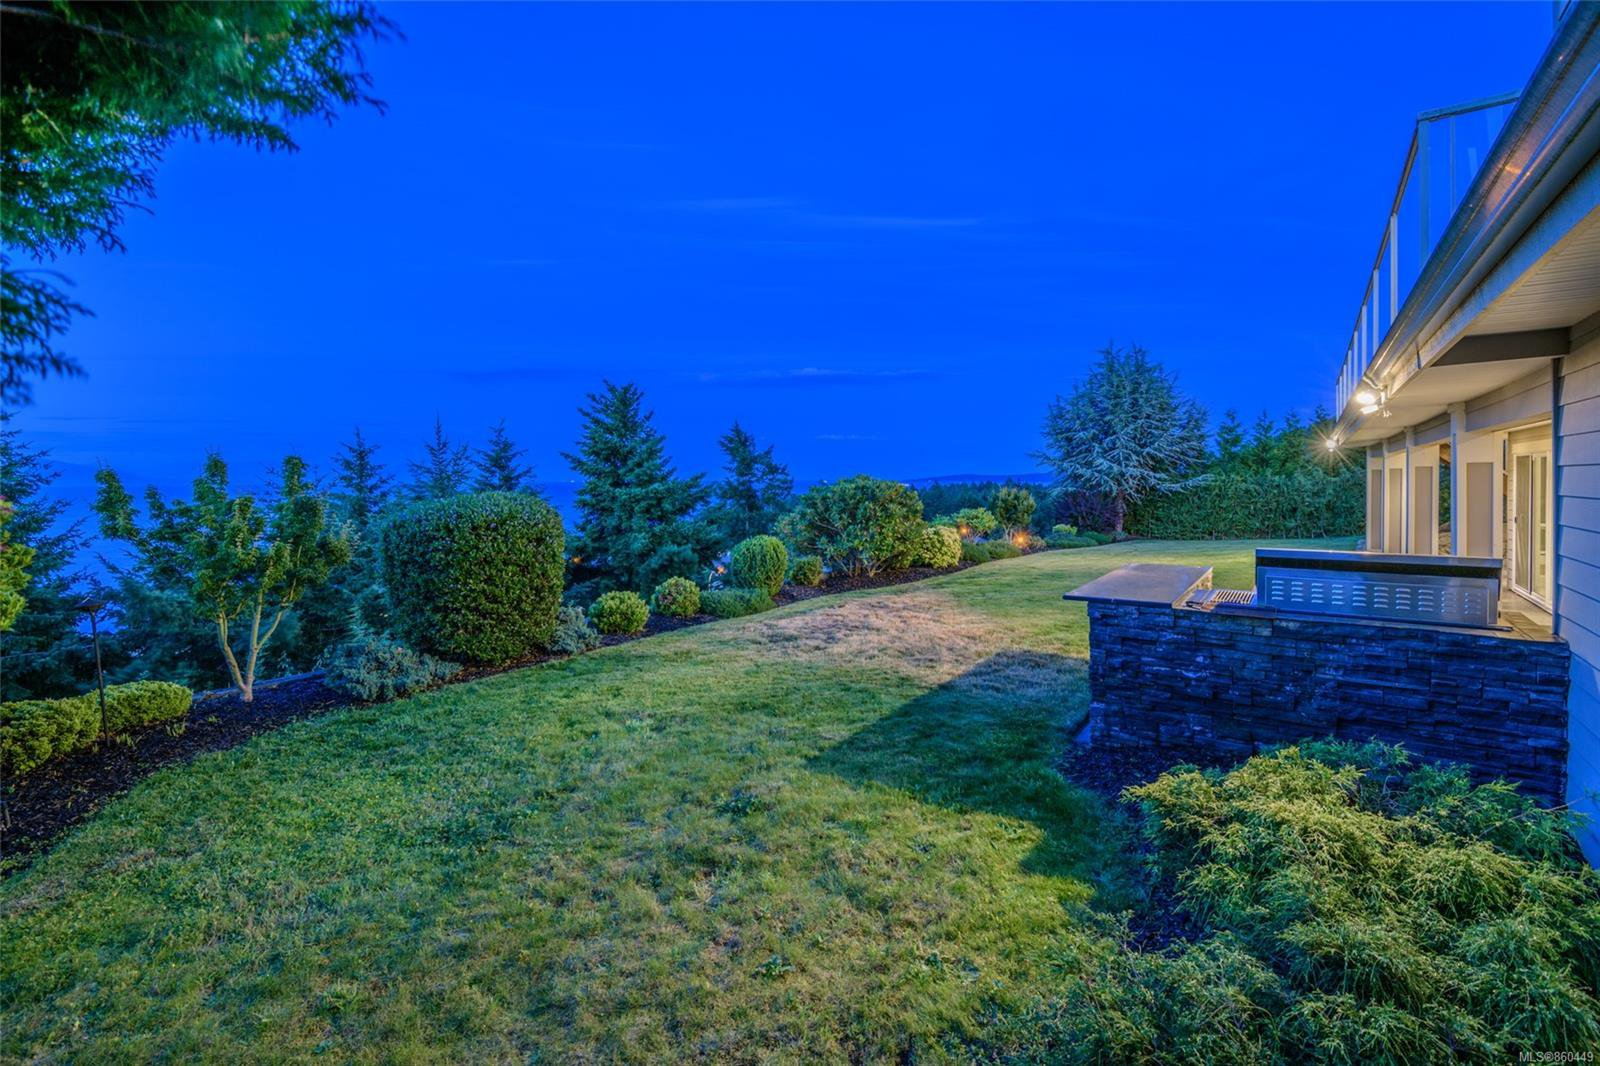 Photo 54: Photos: 5019 Hinrich View in : Na North Nanaimo House for sale (Nanaimo)  : MLS®# 860449